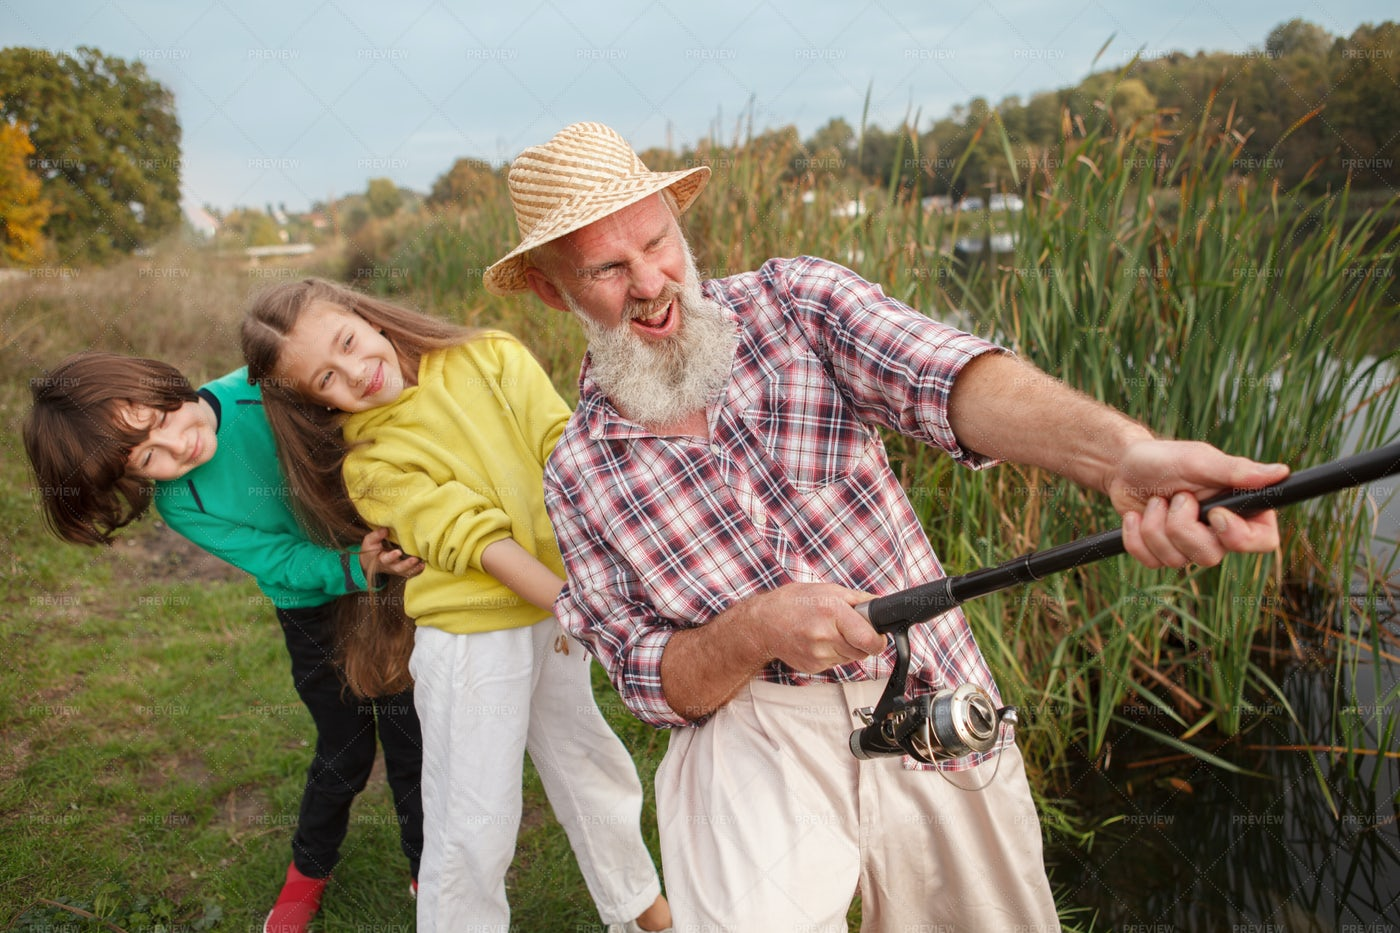 Kids And Grandpa Pulling A Fish In: Stock Photos